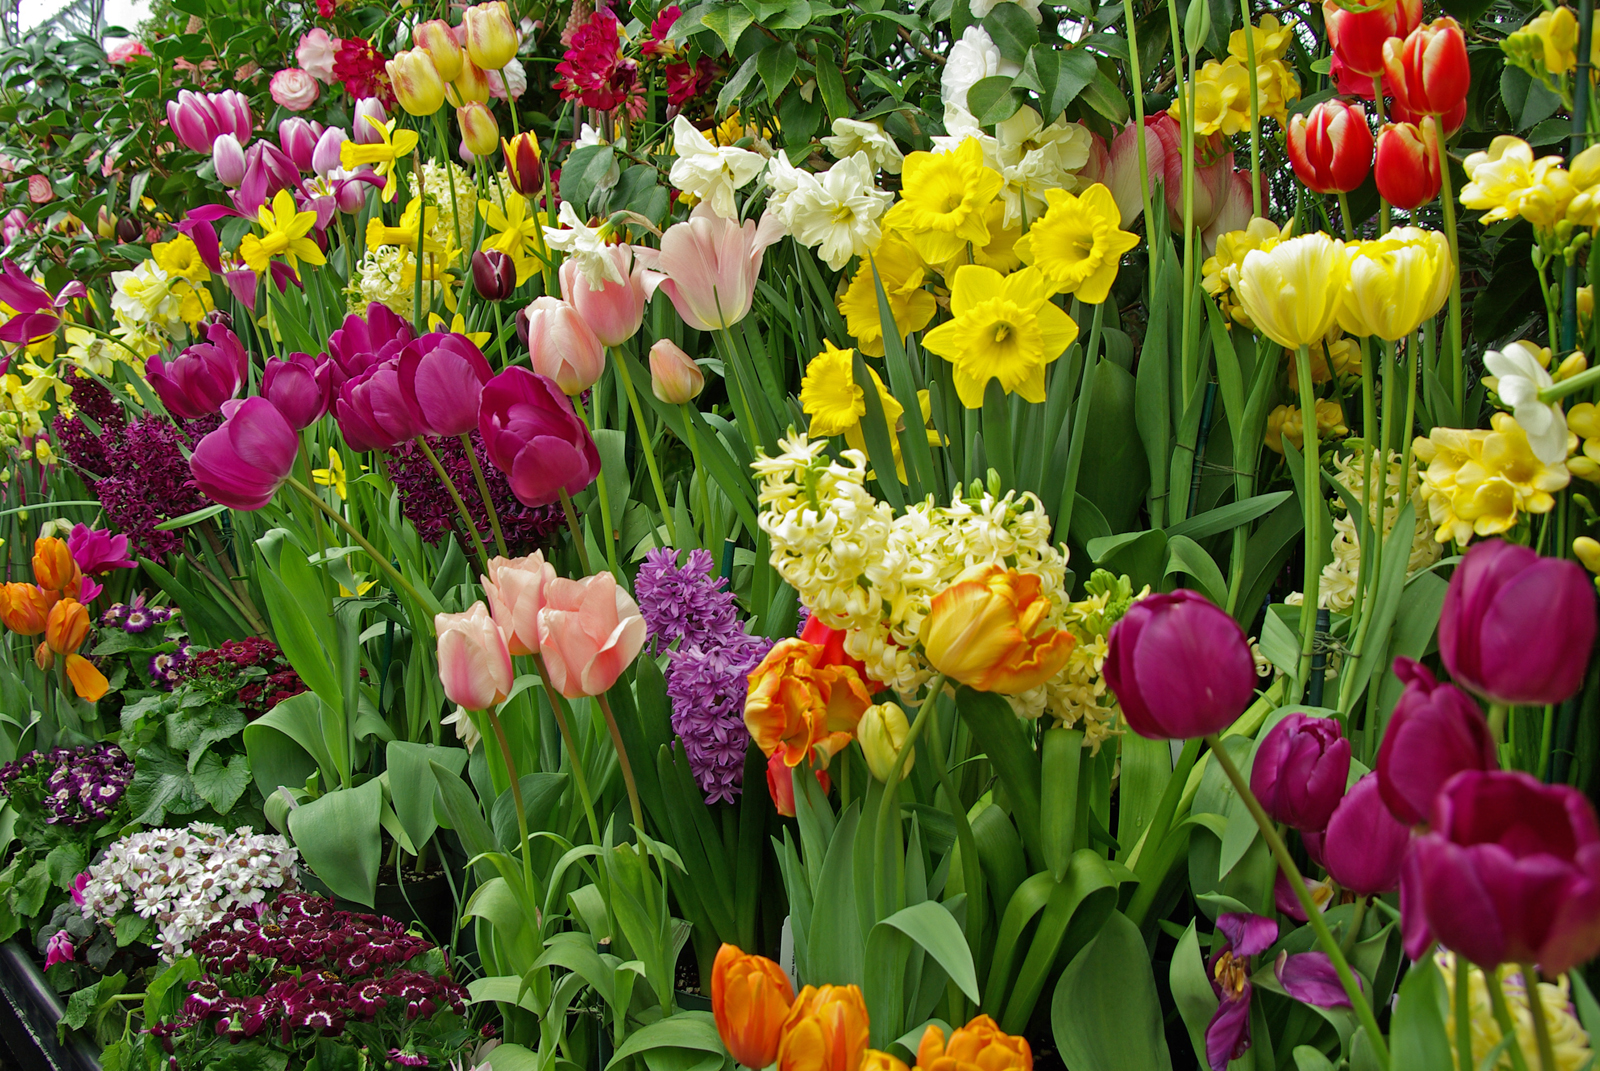 A spring display of daffodils, tulips, and hyacinths